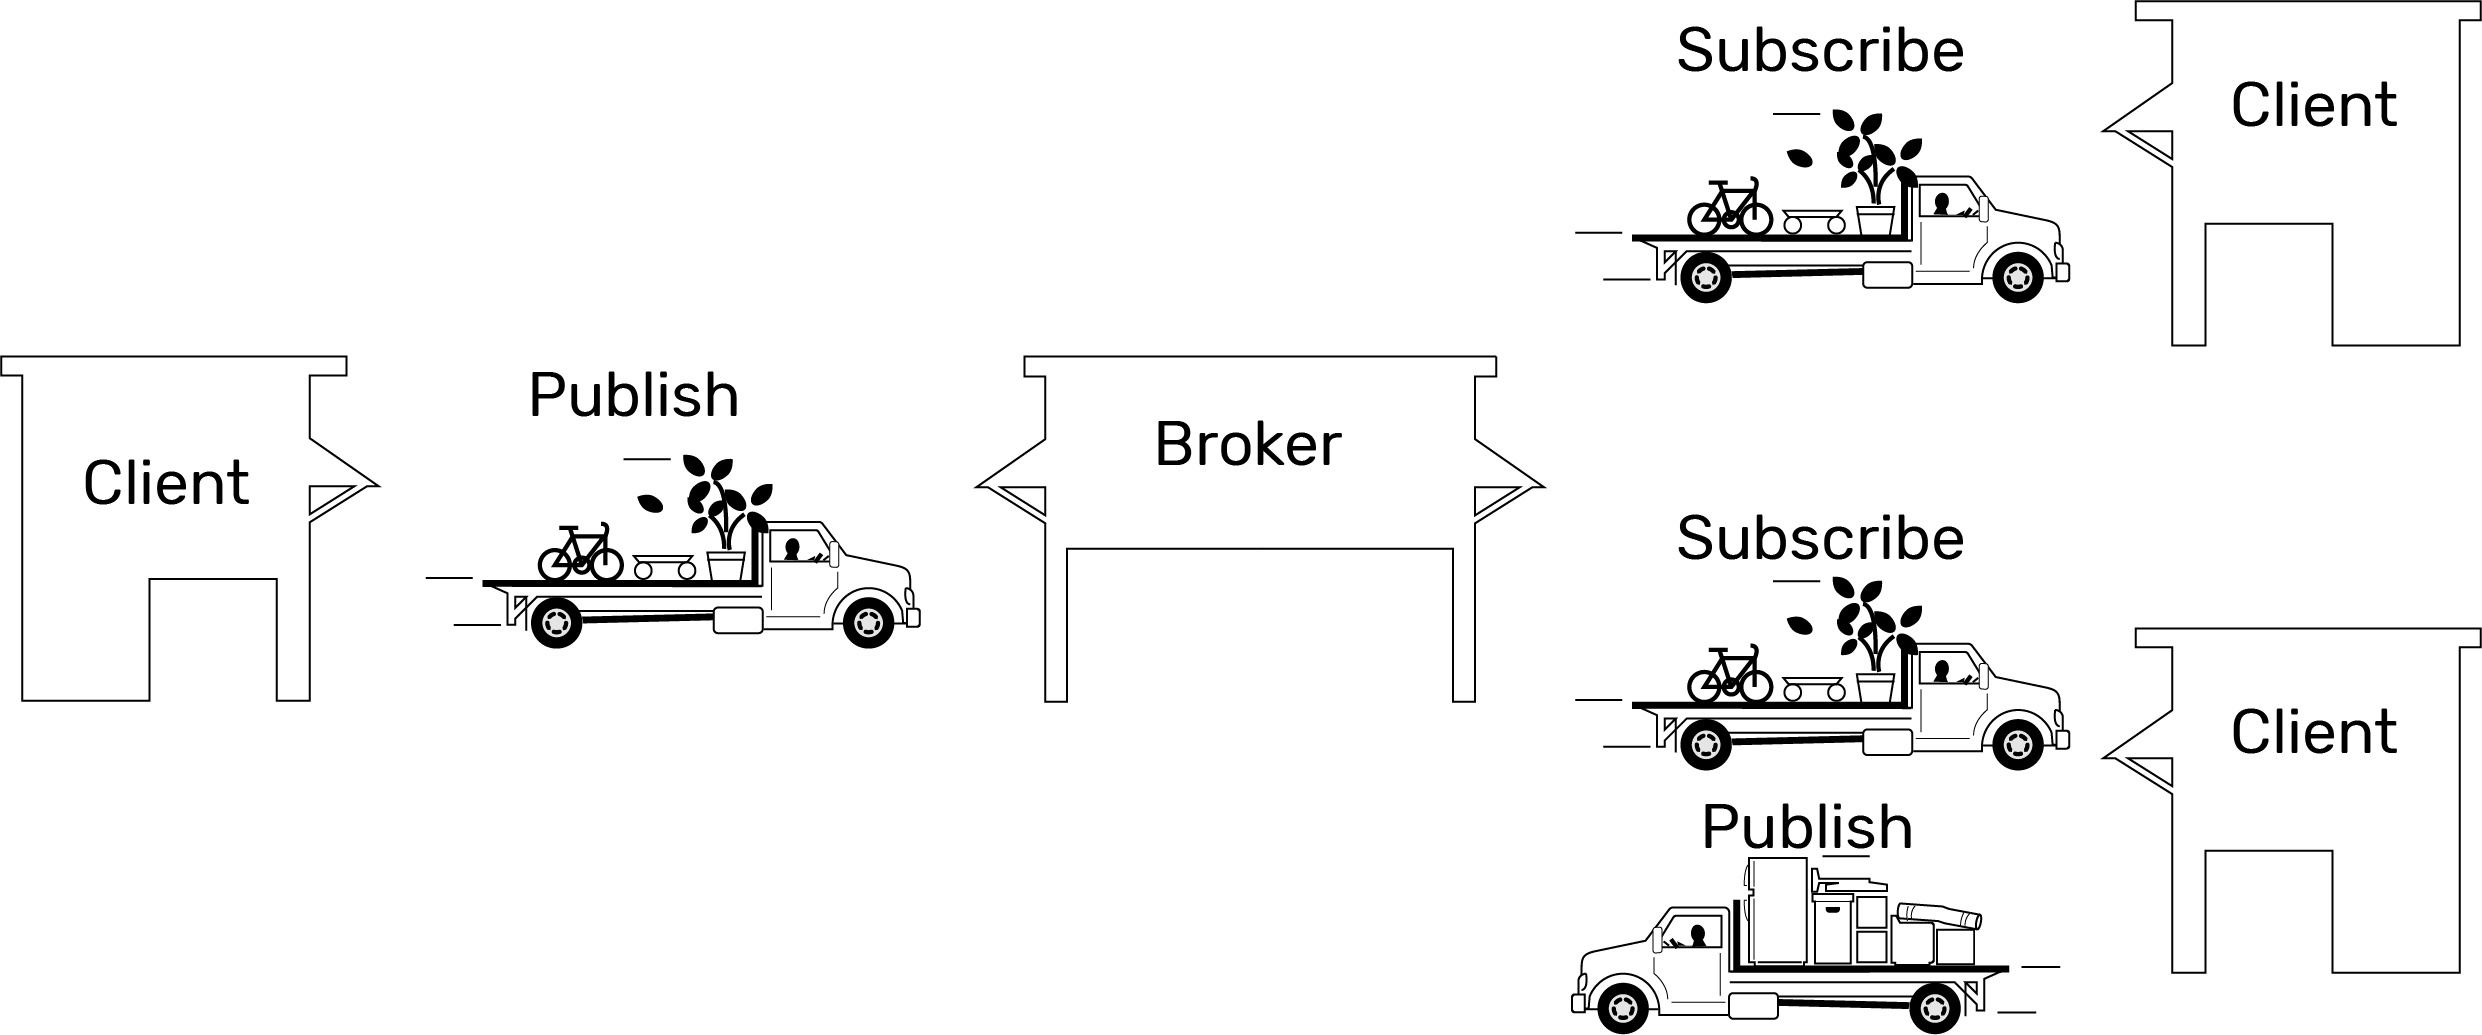 MQTT clients and broker illustration